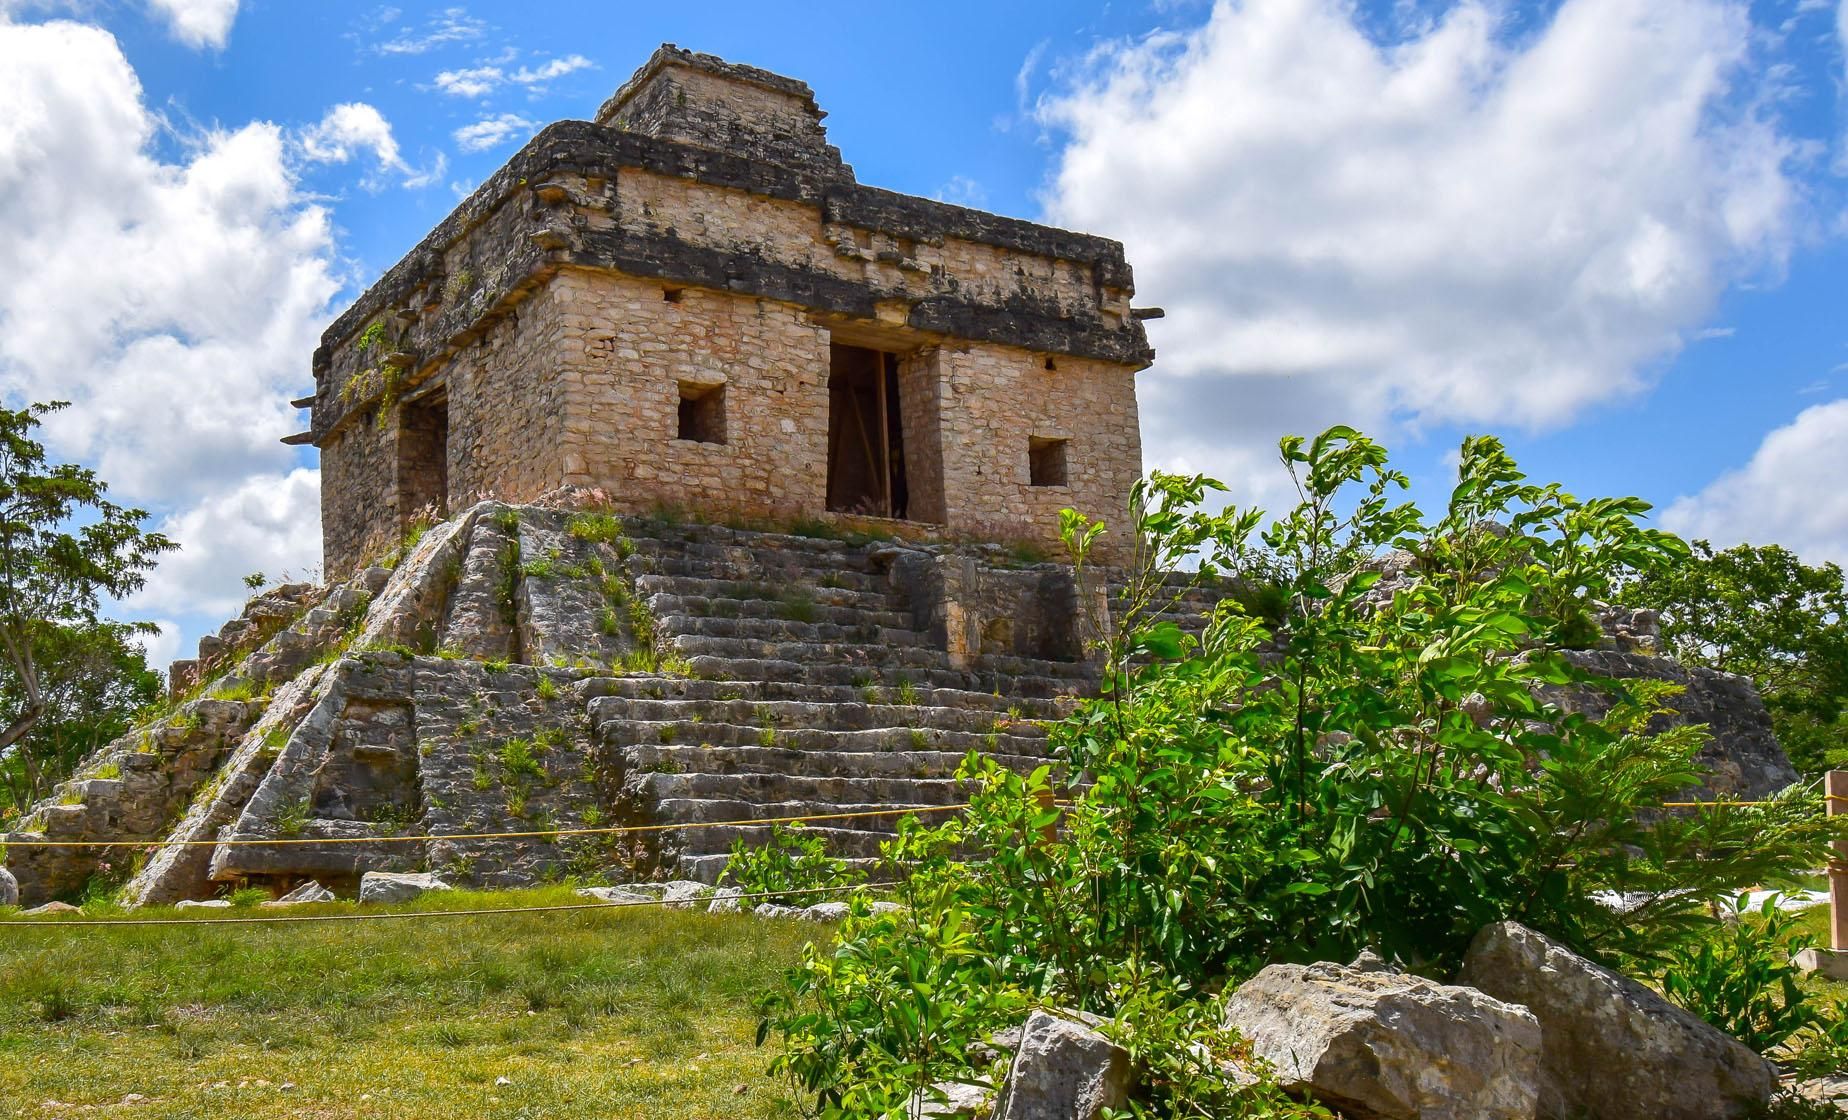 Dzibilchaltun Mayan Ruins Tour in Progreso (Temple of the Seven Dolls, Cenote Xlacah Sinkhole)